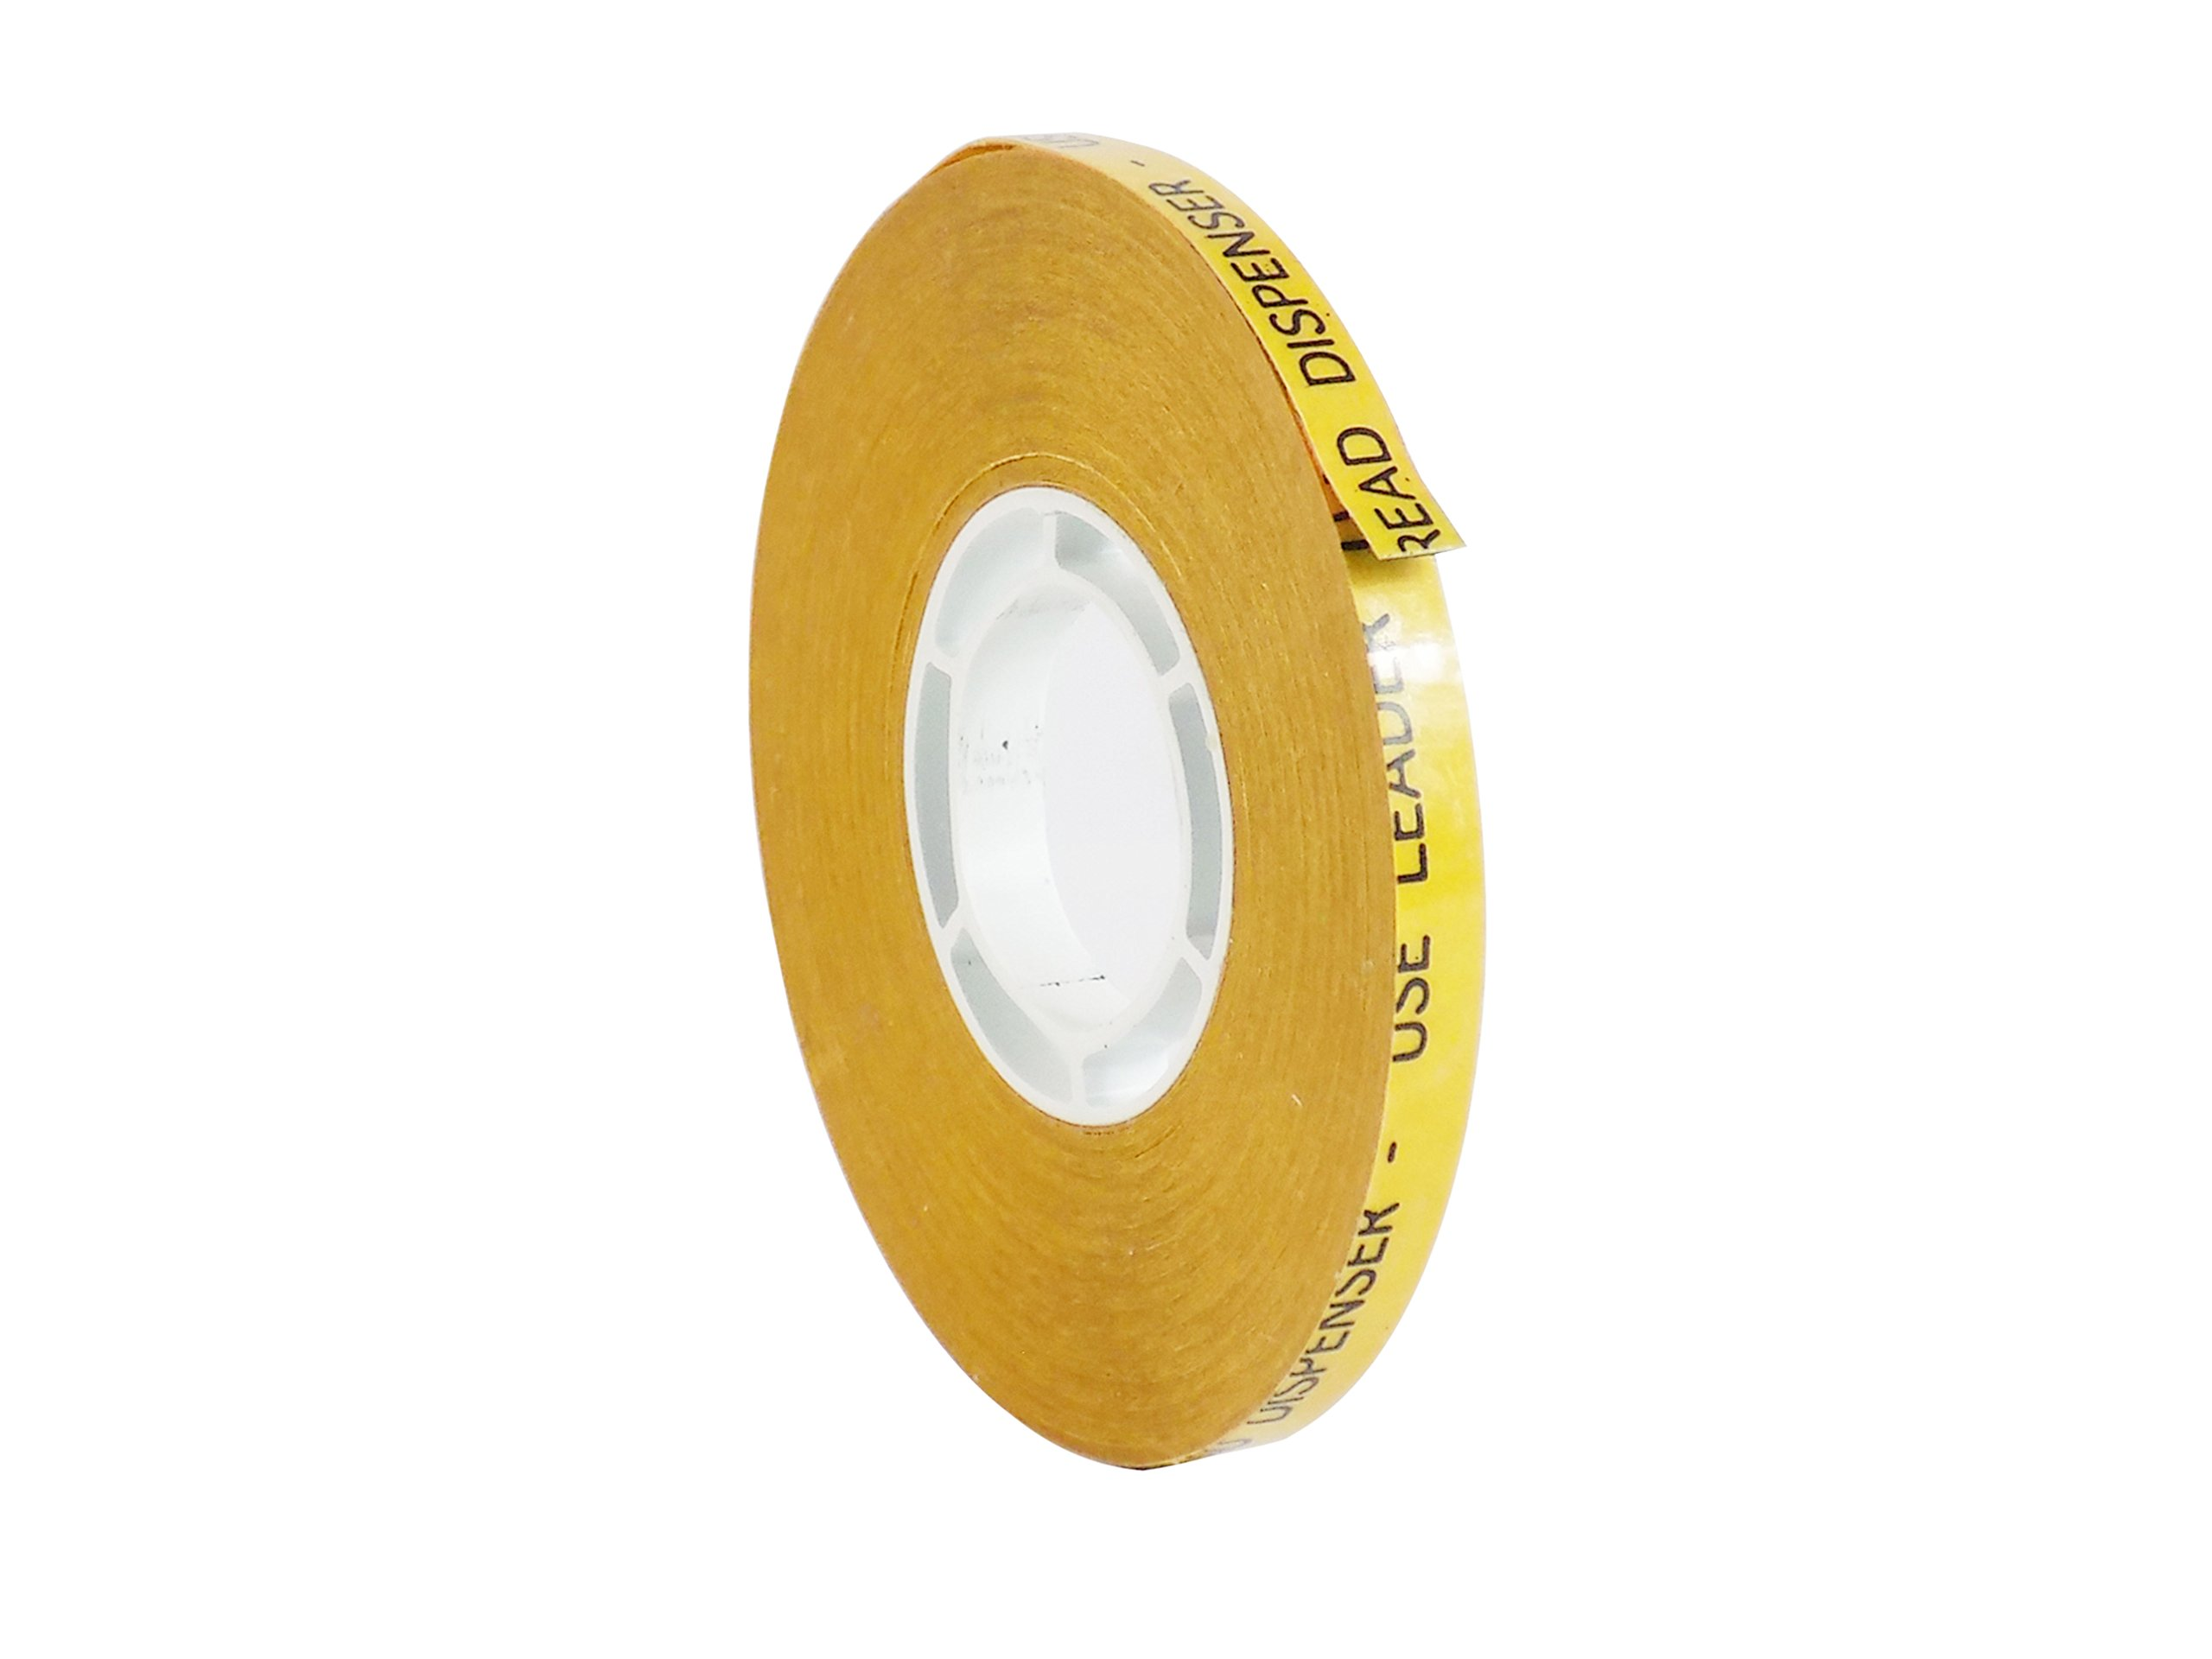 WOD ATG-7502 General Purpose ATG Tape, Adhesive Transfer Tape Glider Refill Rolls Clear Adhesive on Gold Liner (Acid Free and Available in Multiple Sizes): 1/4 in. Wide x 36 yds. (Pack of 144)